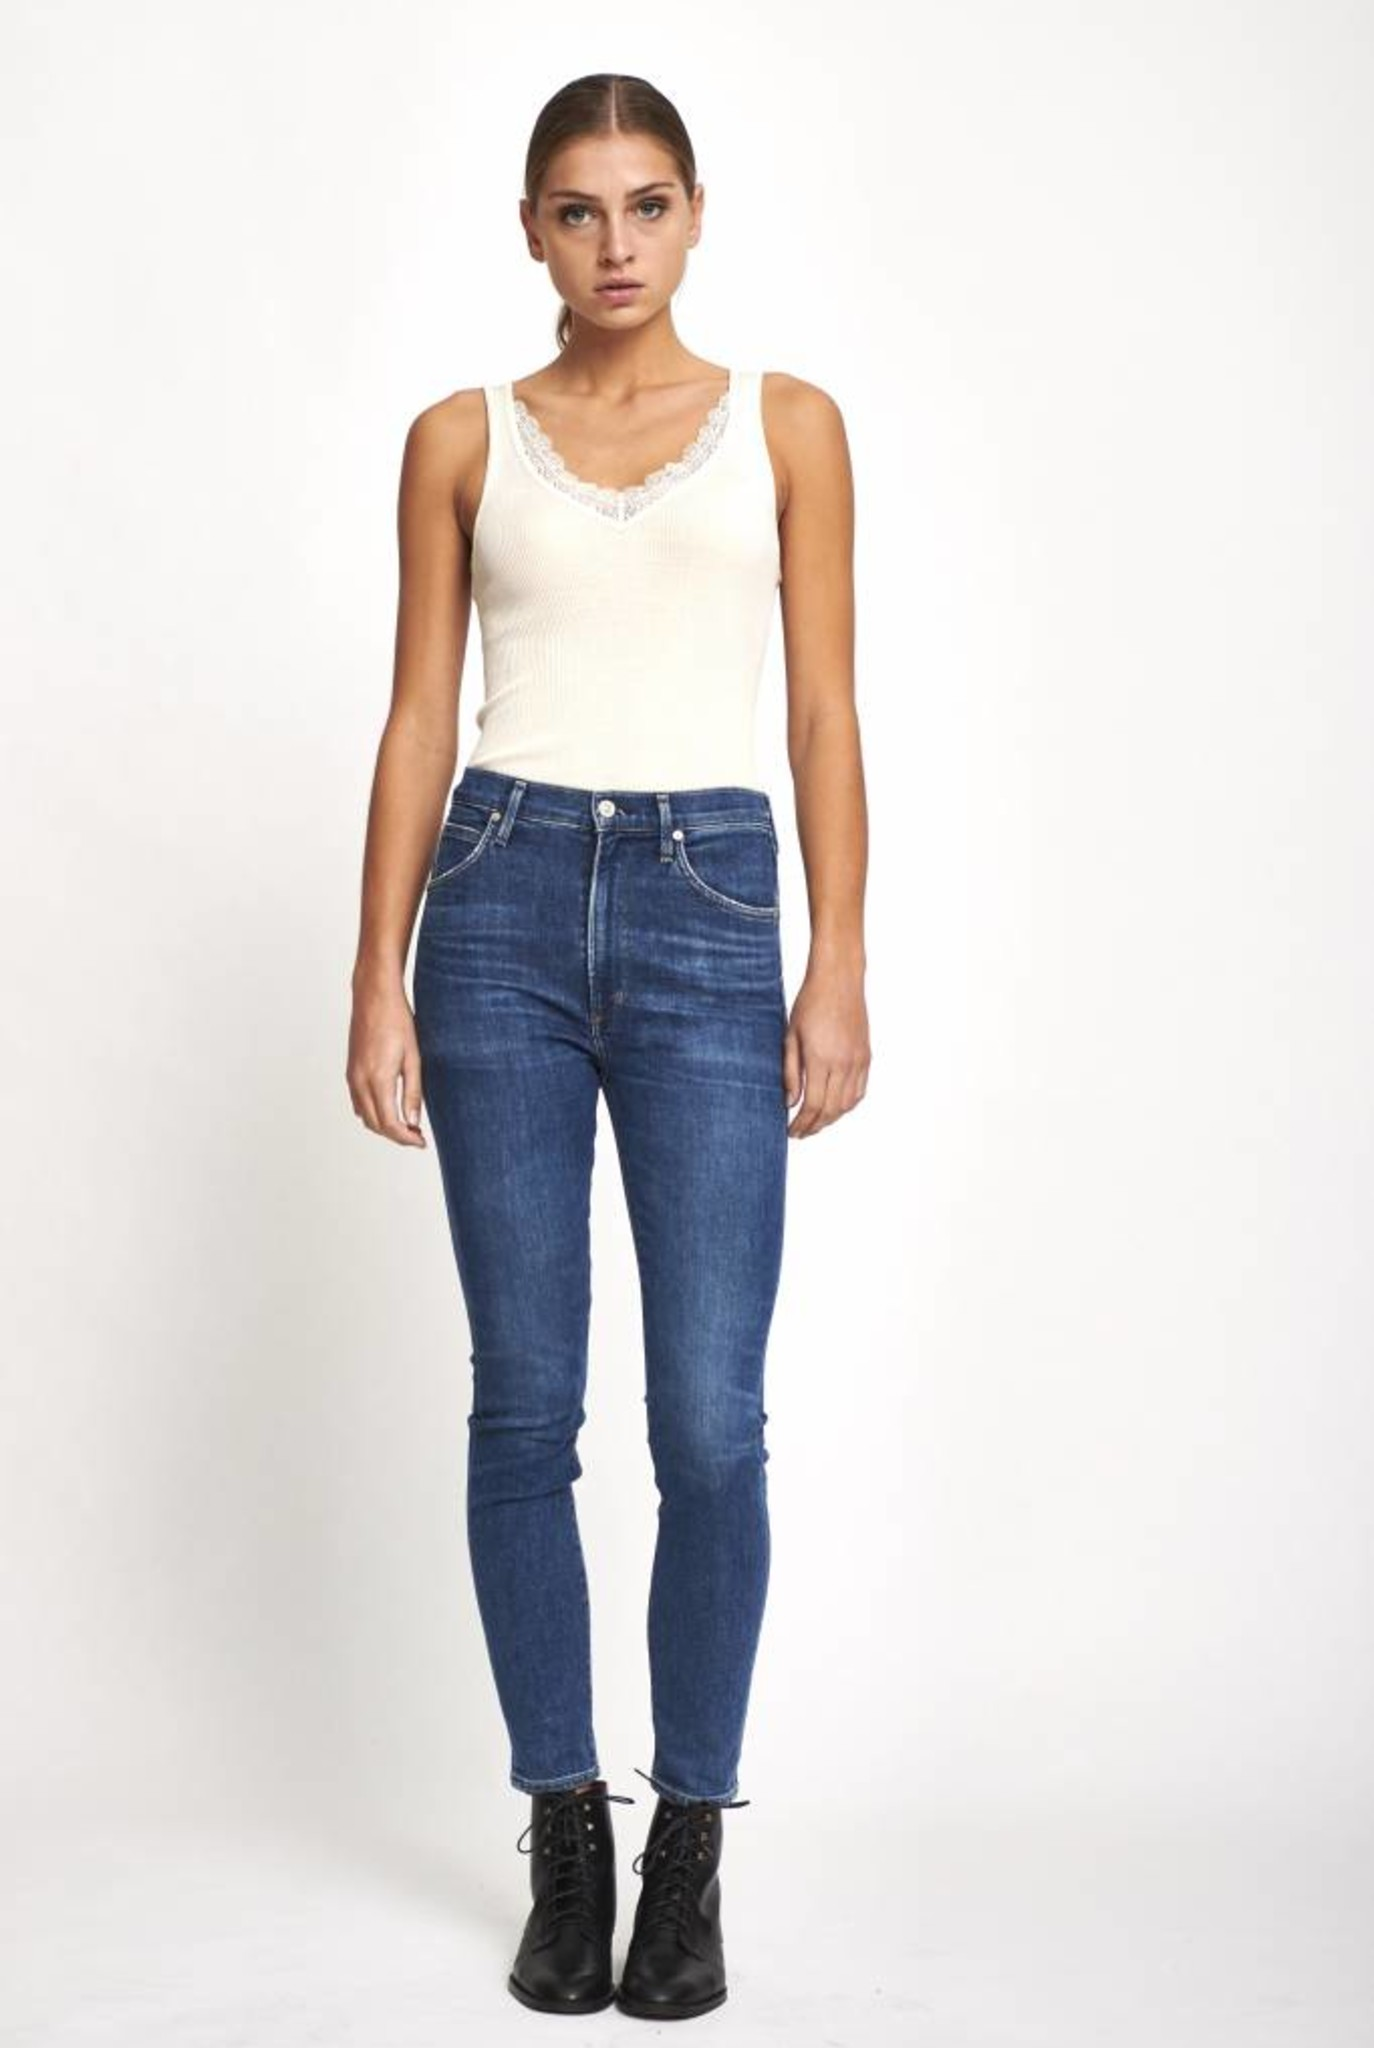 Chrissy uber high rise skinny jeans in hotline